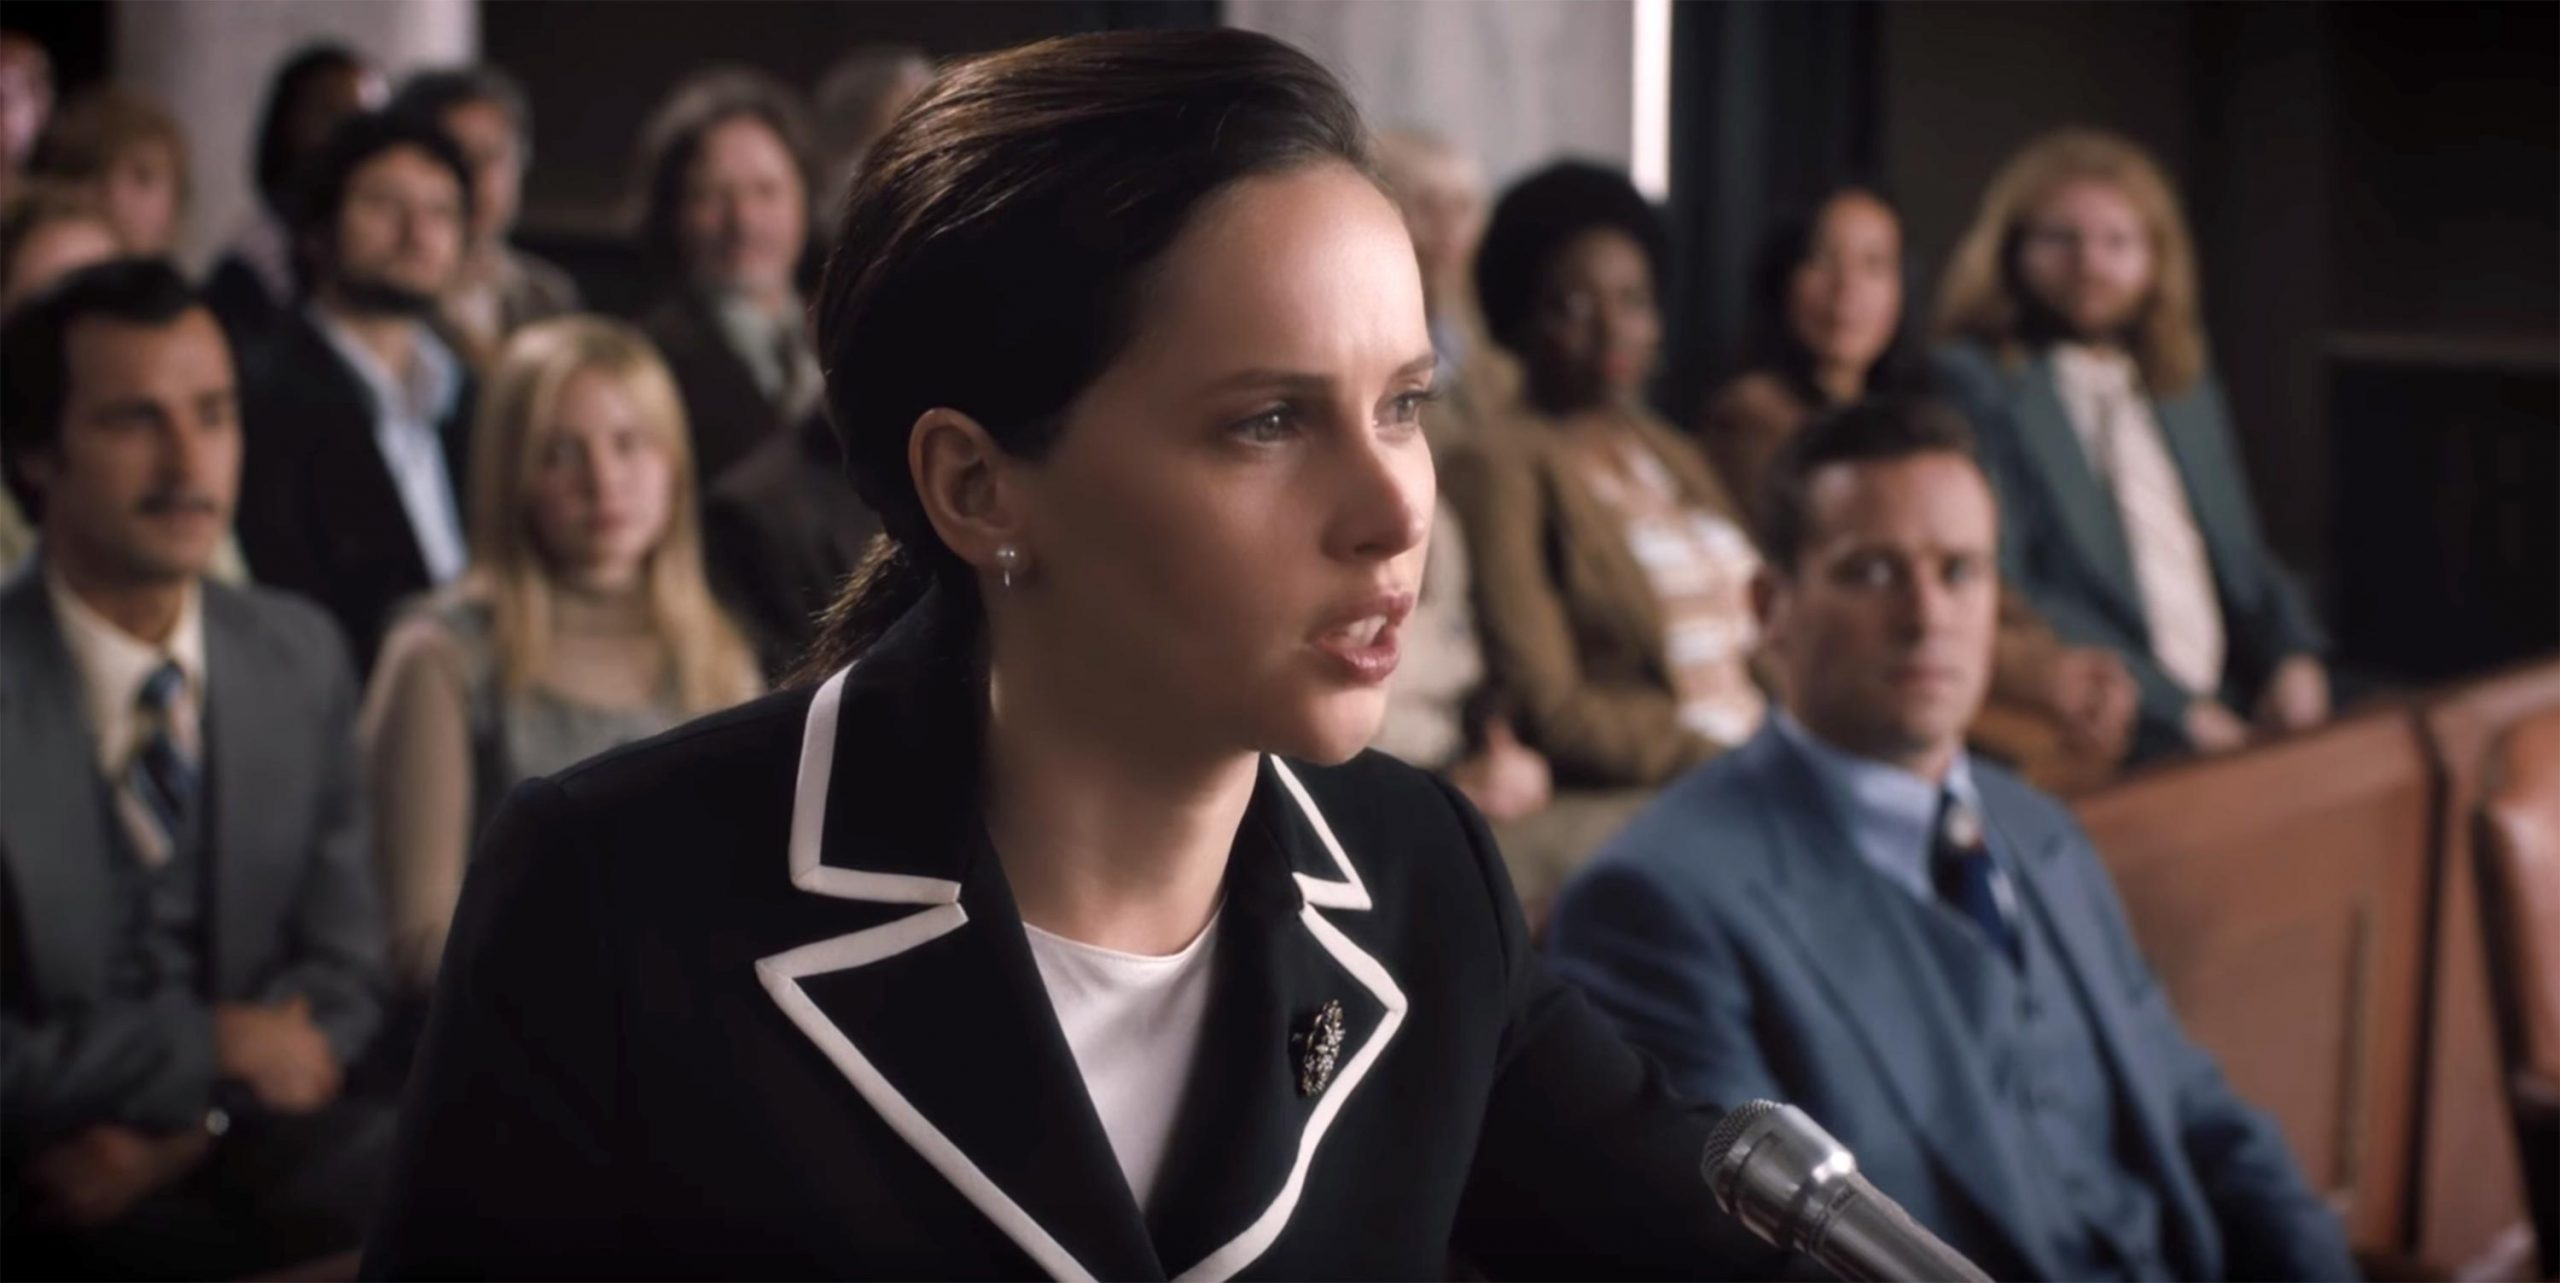 Felicity Jones as Ruth Bader Ginsburg in One the Basis of Sex.